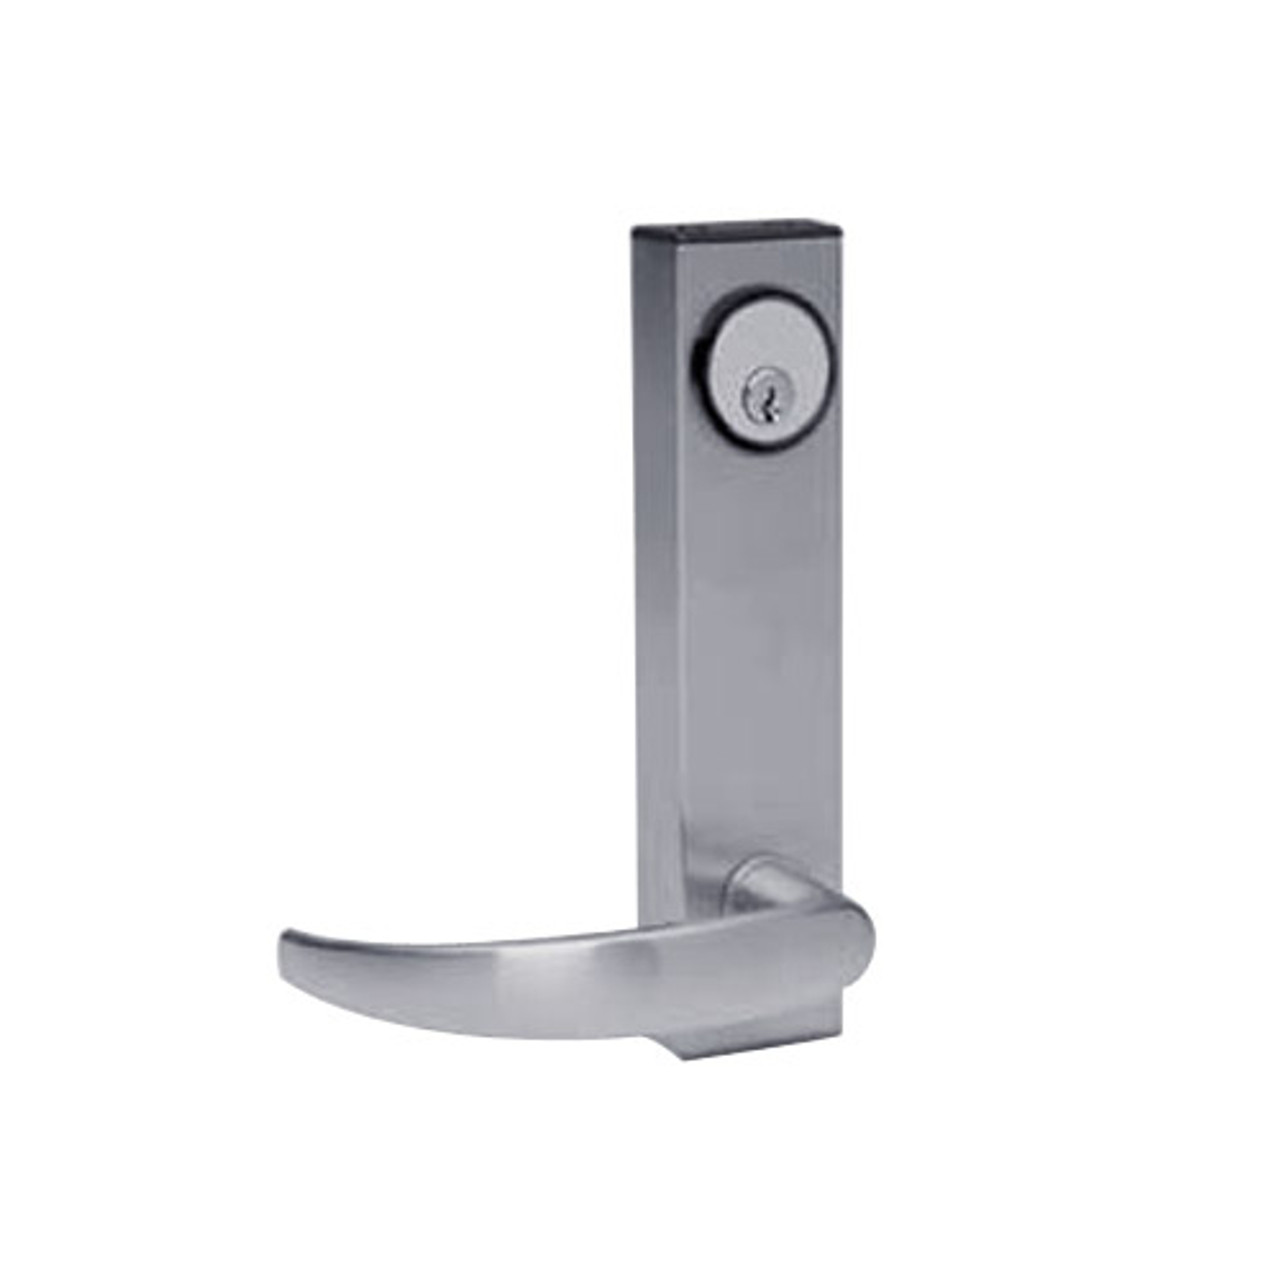 3080E-01-0-97-50 US32D Adams Rite Electrified Entry Trim with Curve Lever in Satin Stainless Finish